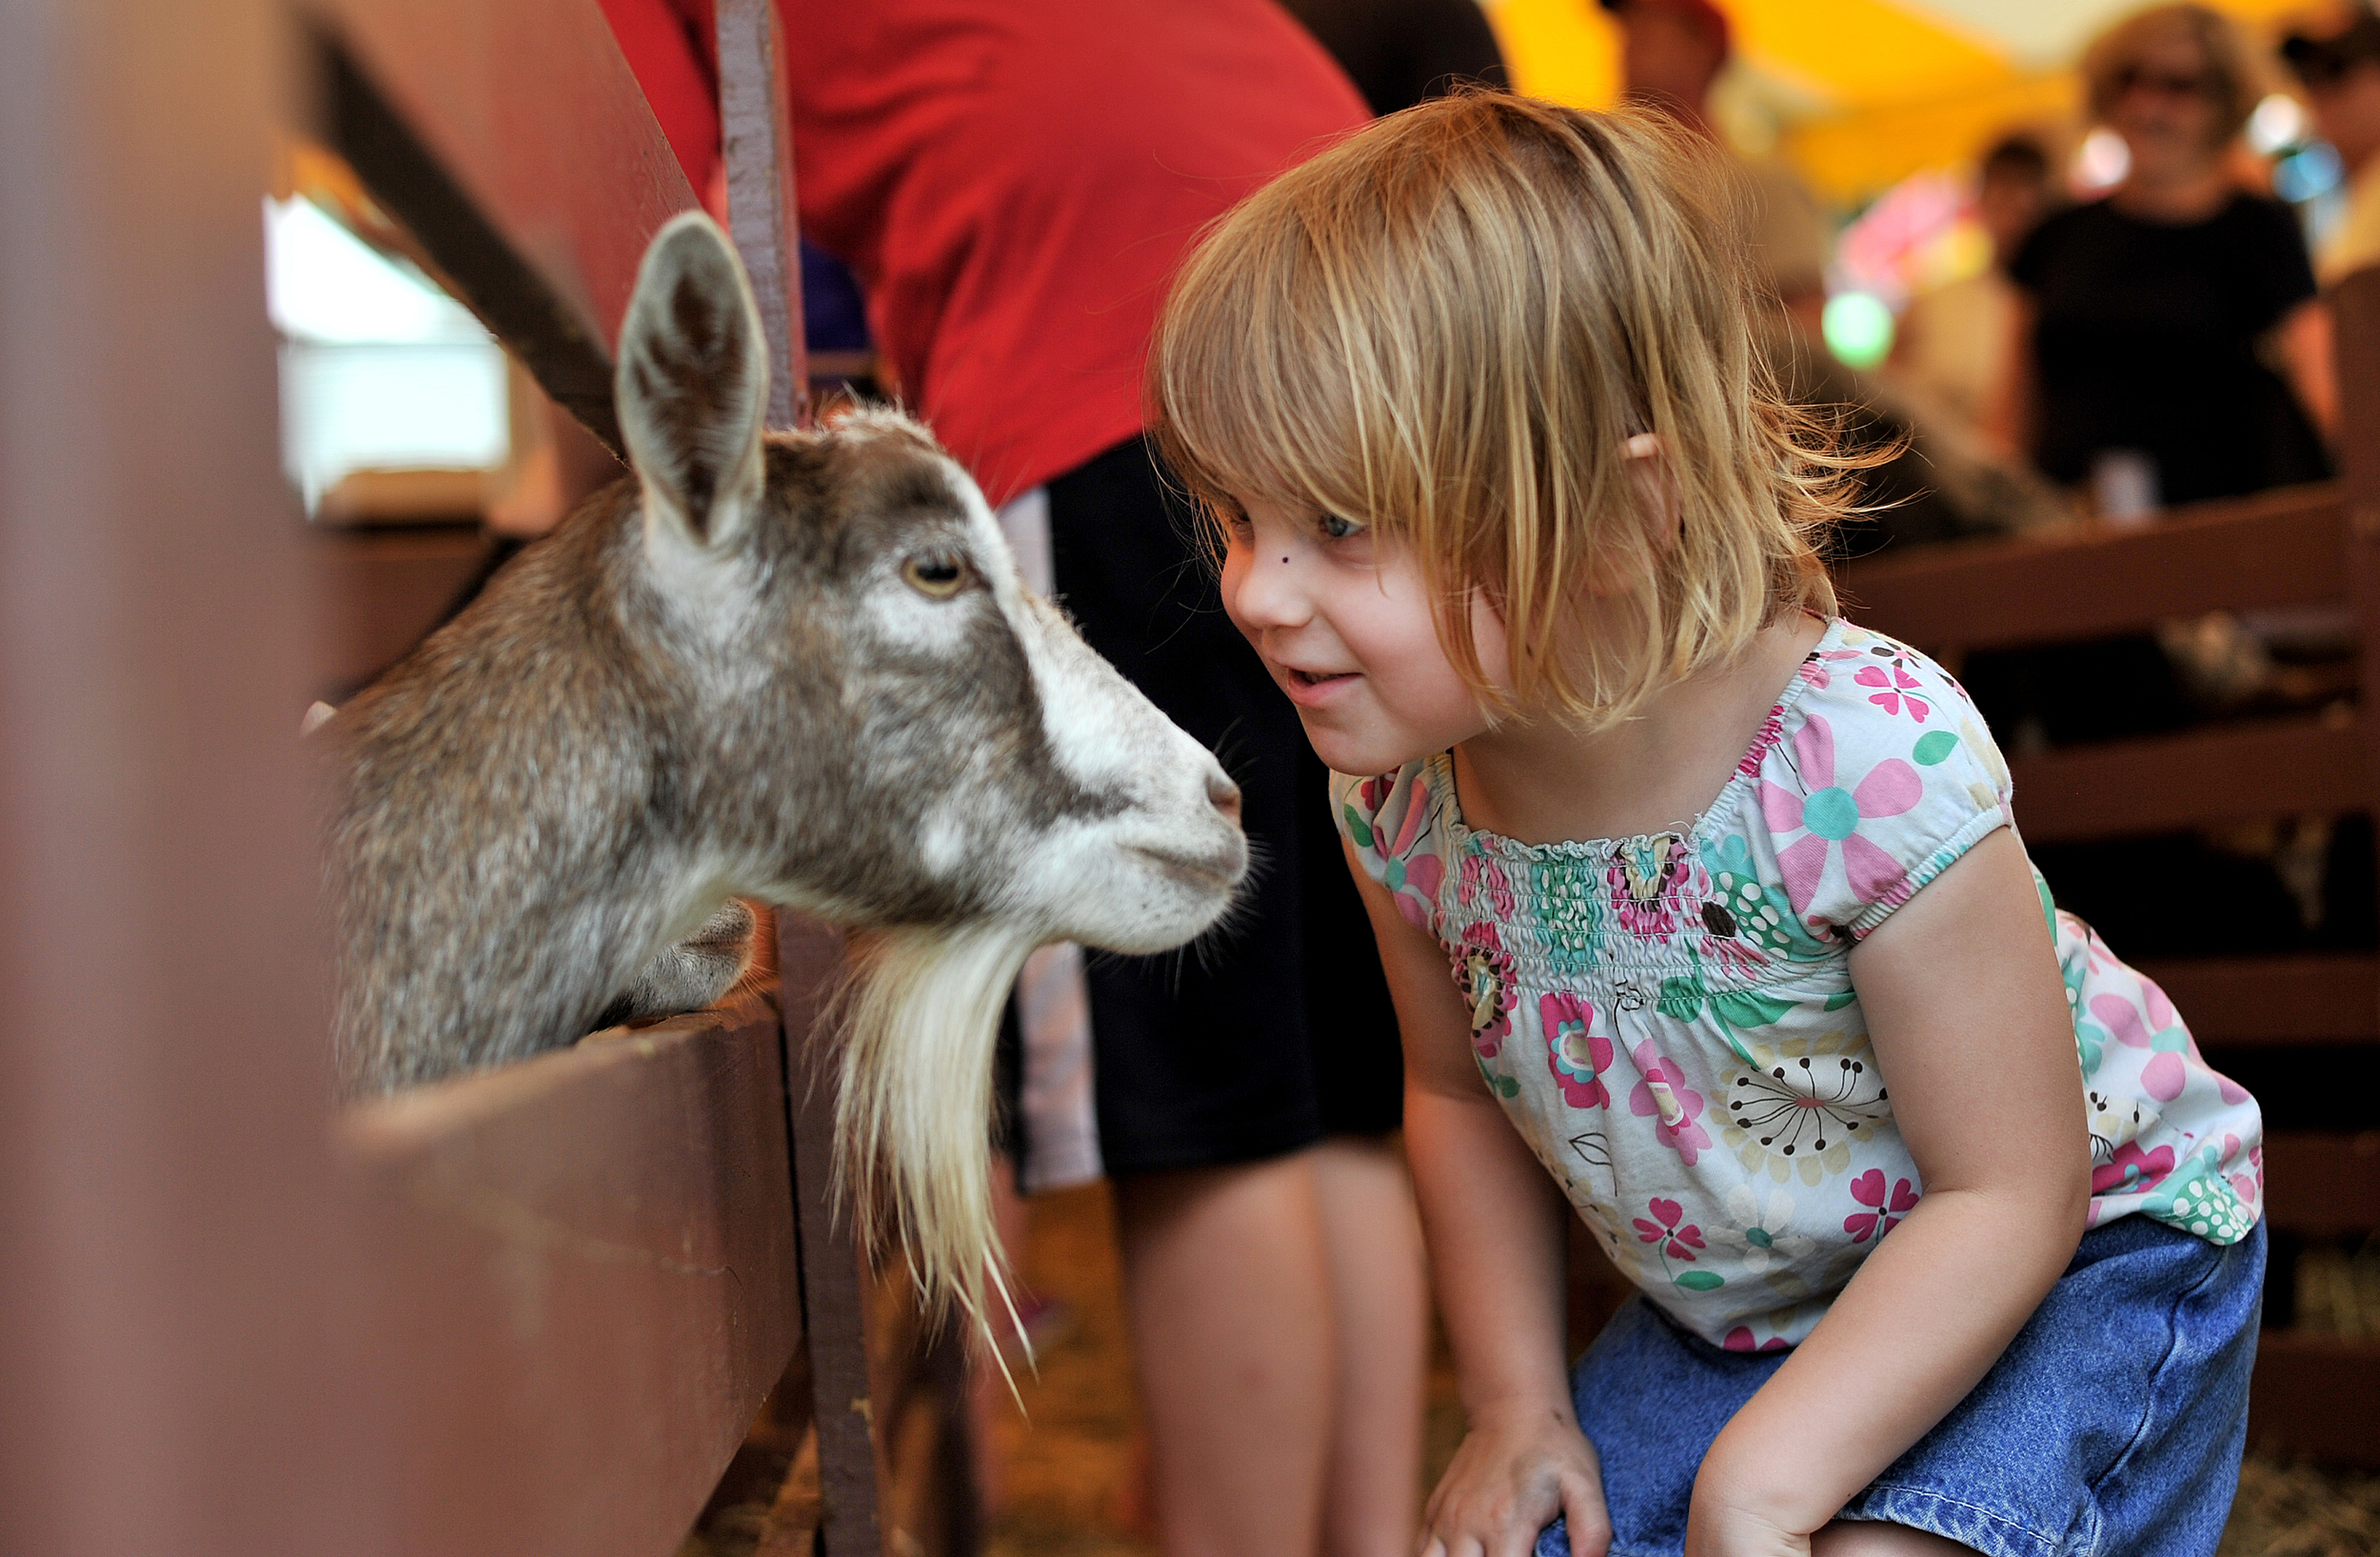 Sophia Klouser, 3, of Temple meets a goat in the petting zoo at the Kutztown Folk Festival in Kutztown, PA, on July 5, 2016. (Reading Eagle: Sarah Stier)